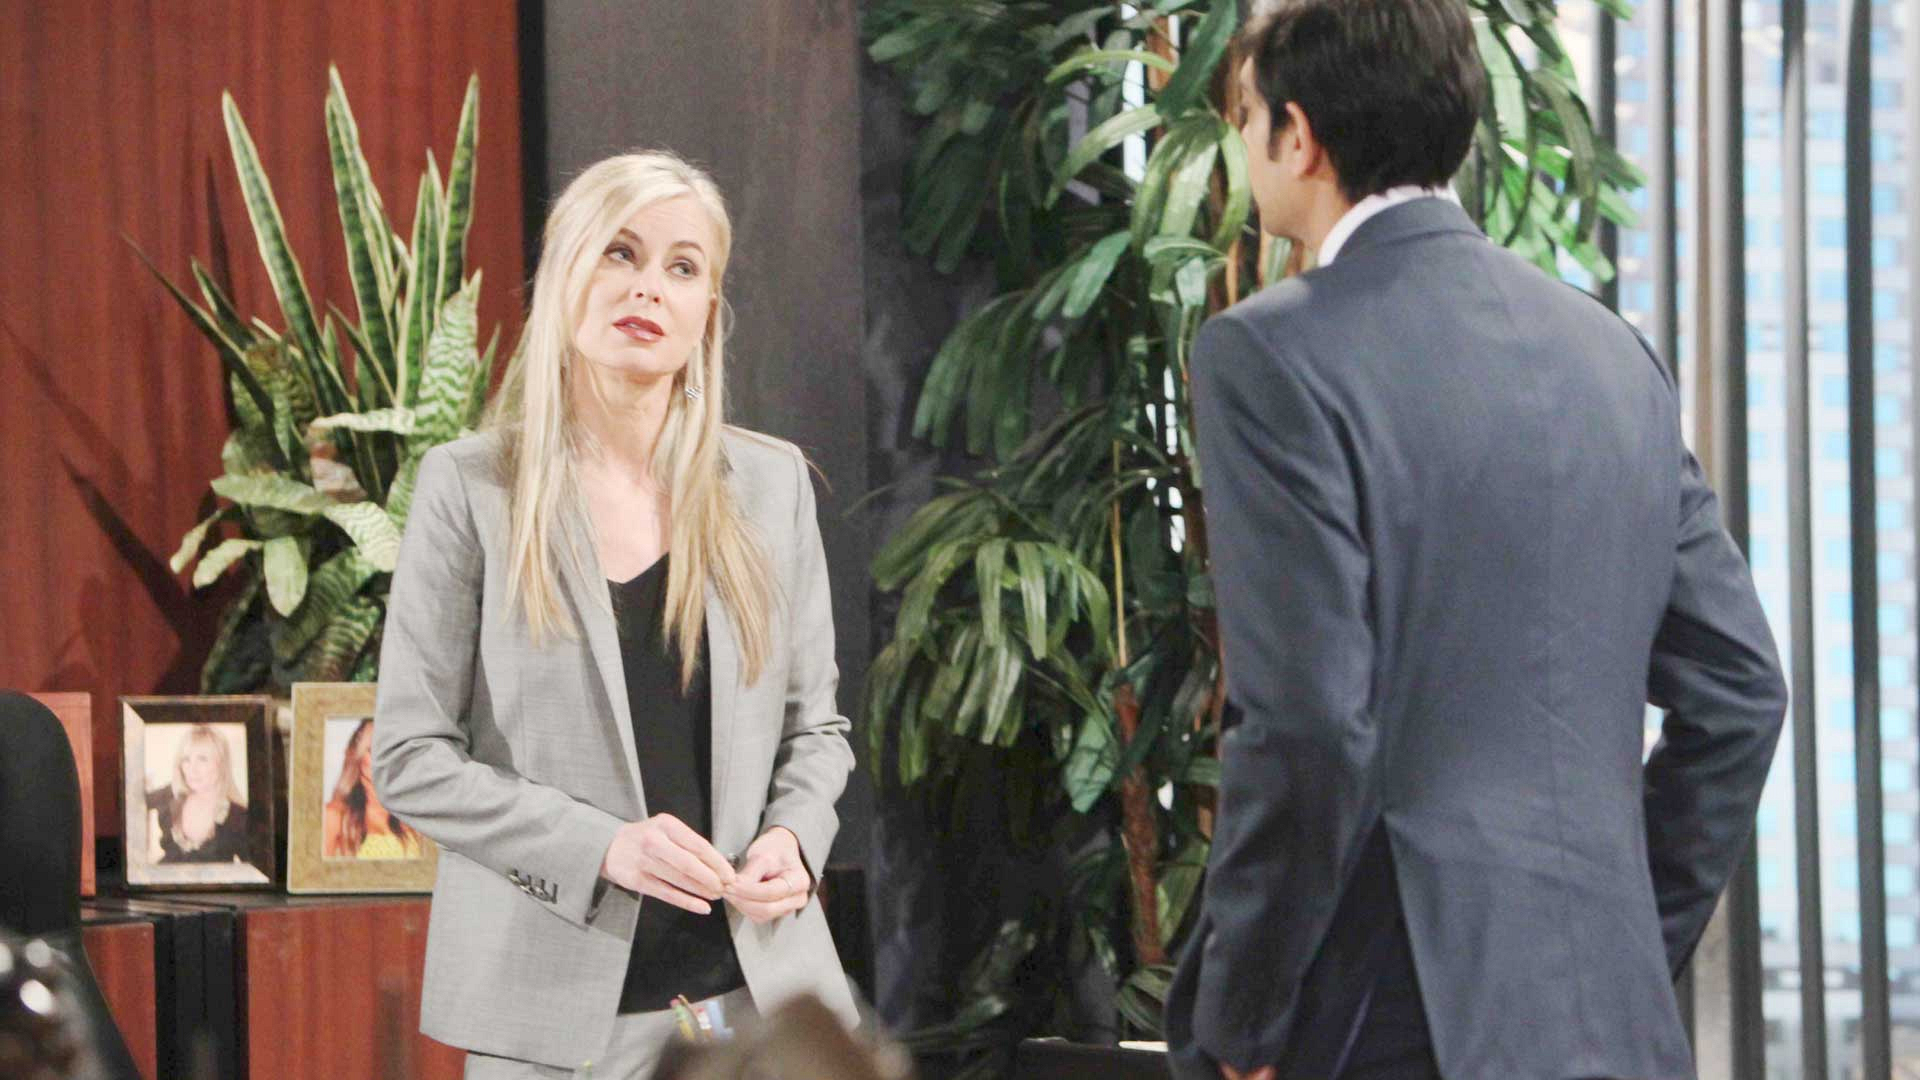 Ashley adopts a new strategy to deal with her family issues.